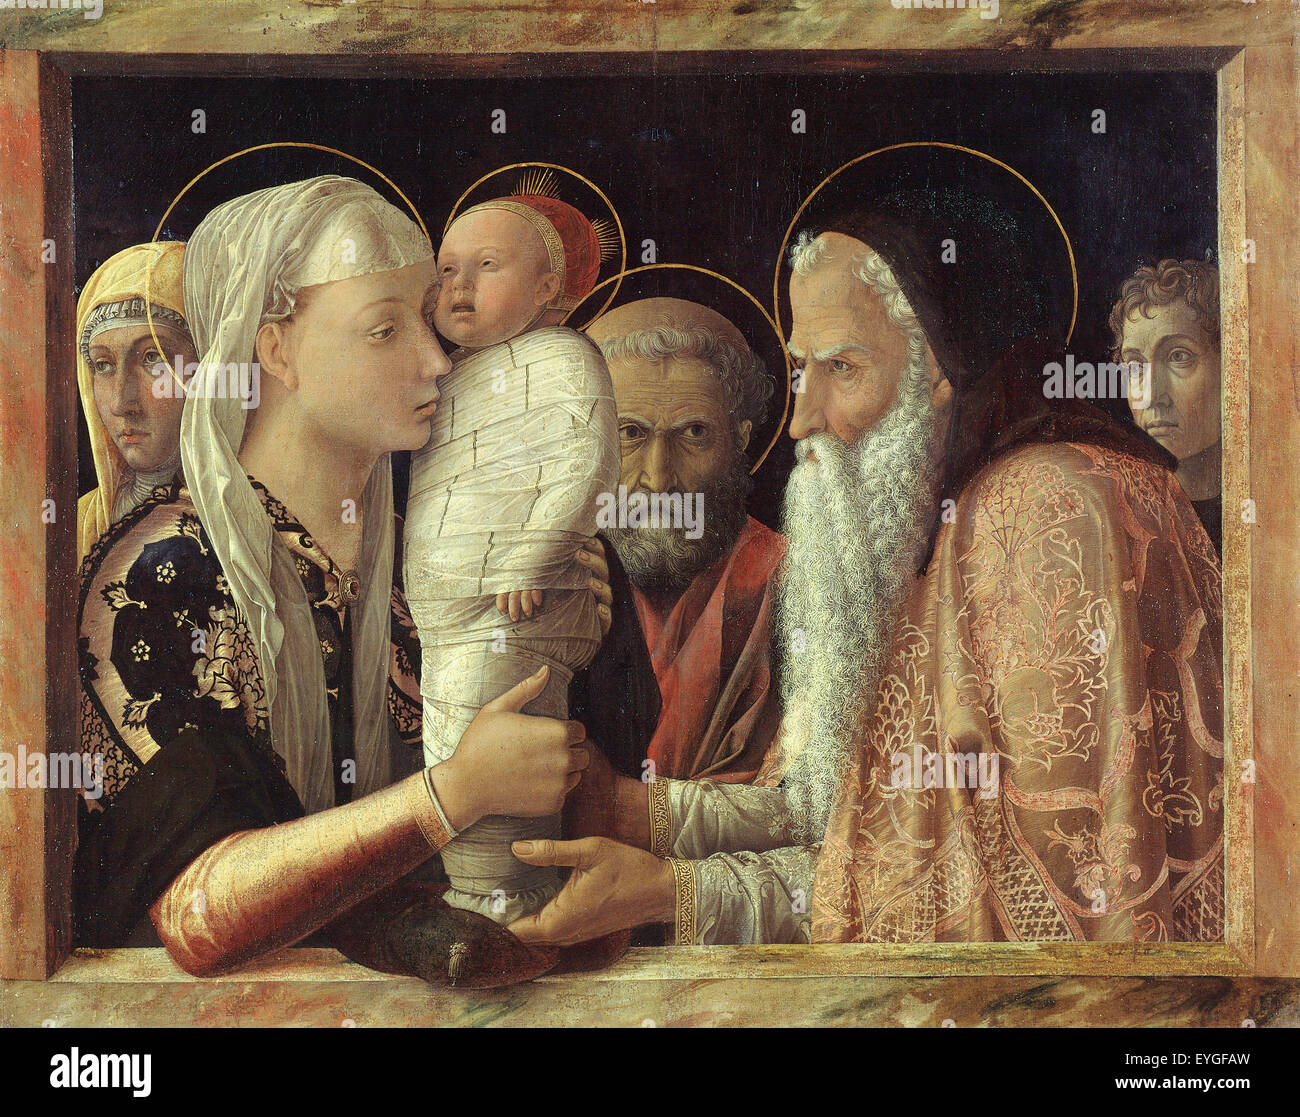 Andrea Mantegna - The Presentation - XV th century - Italian - Stock Image